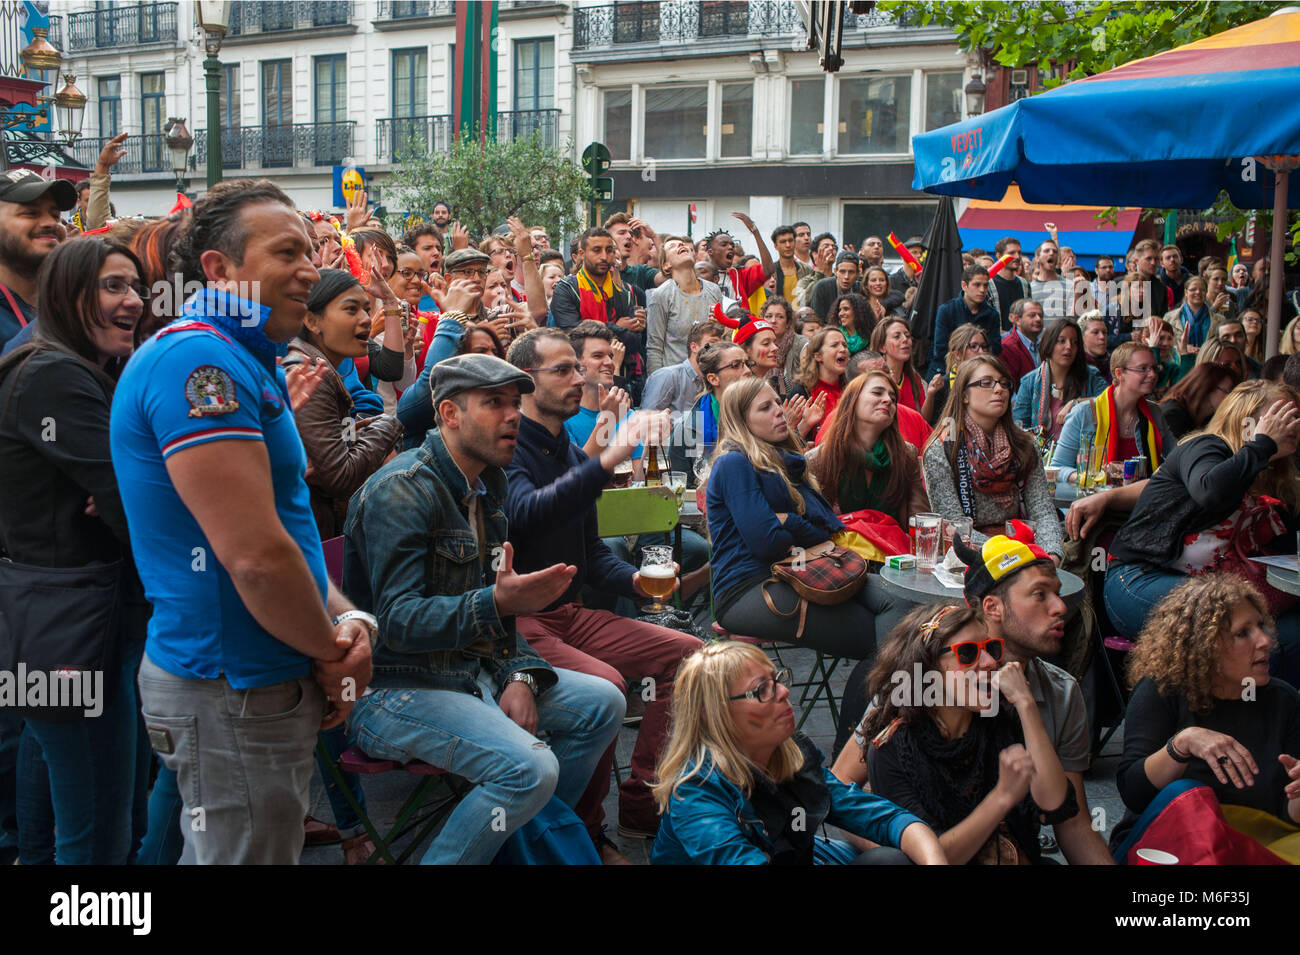 Bruxelles. Belgian supporters celebrate during world football championship, Place Sainte Catherine. Belgium. - Stock Image